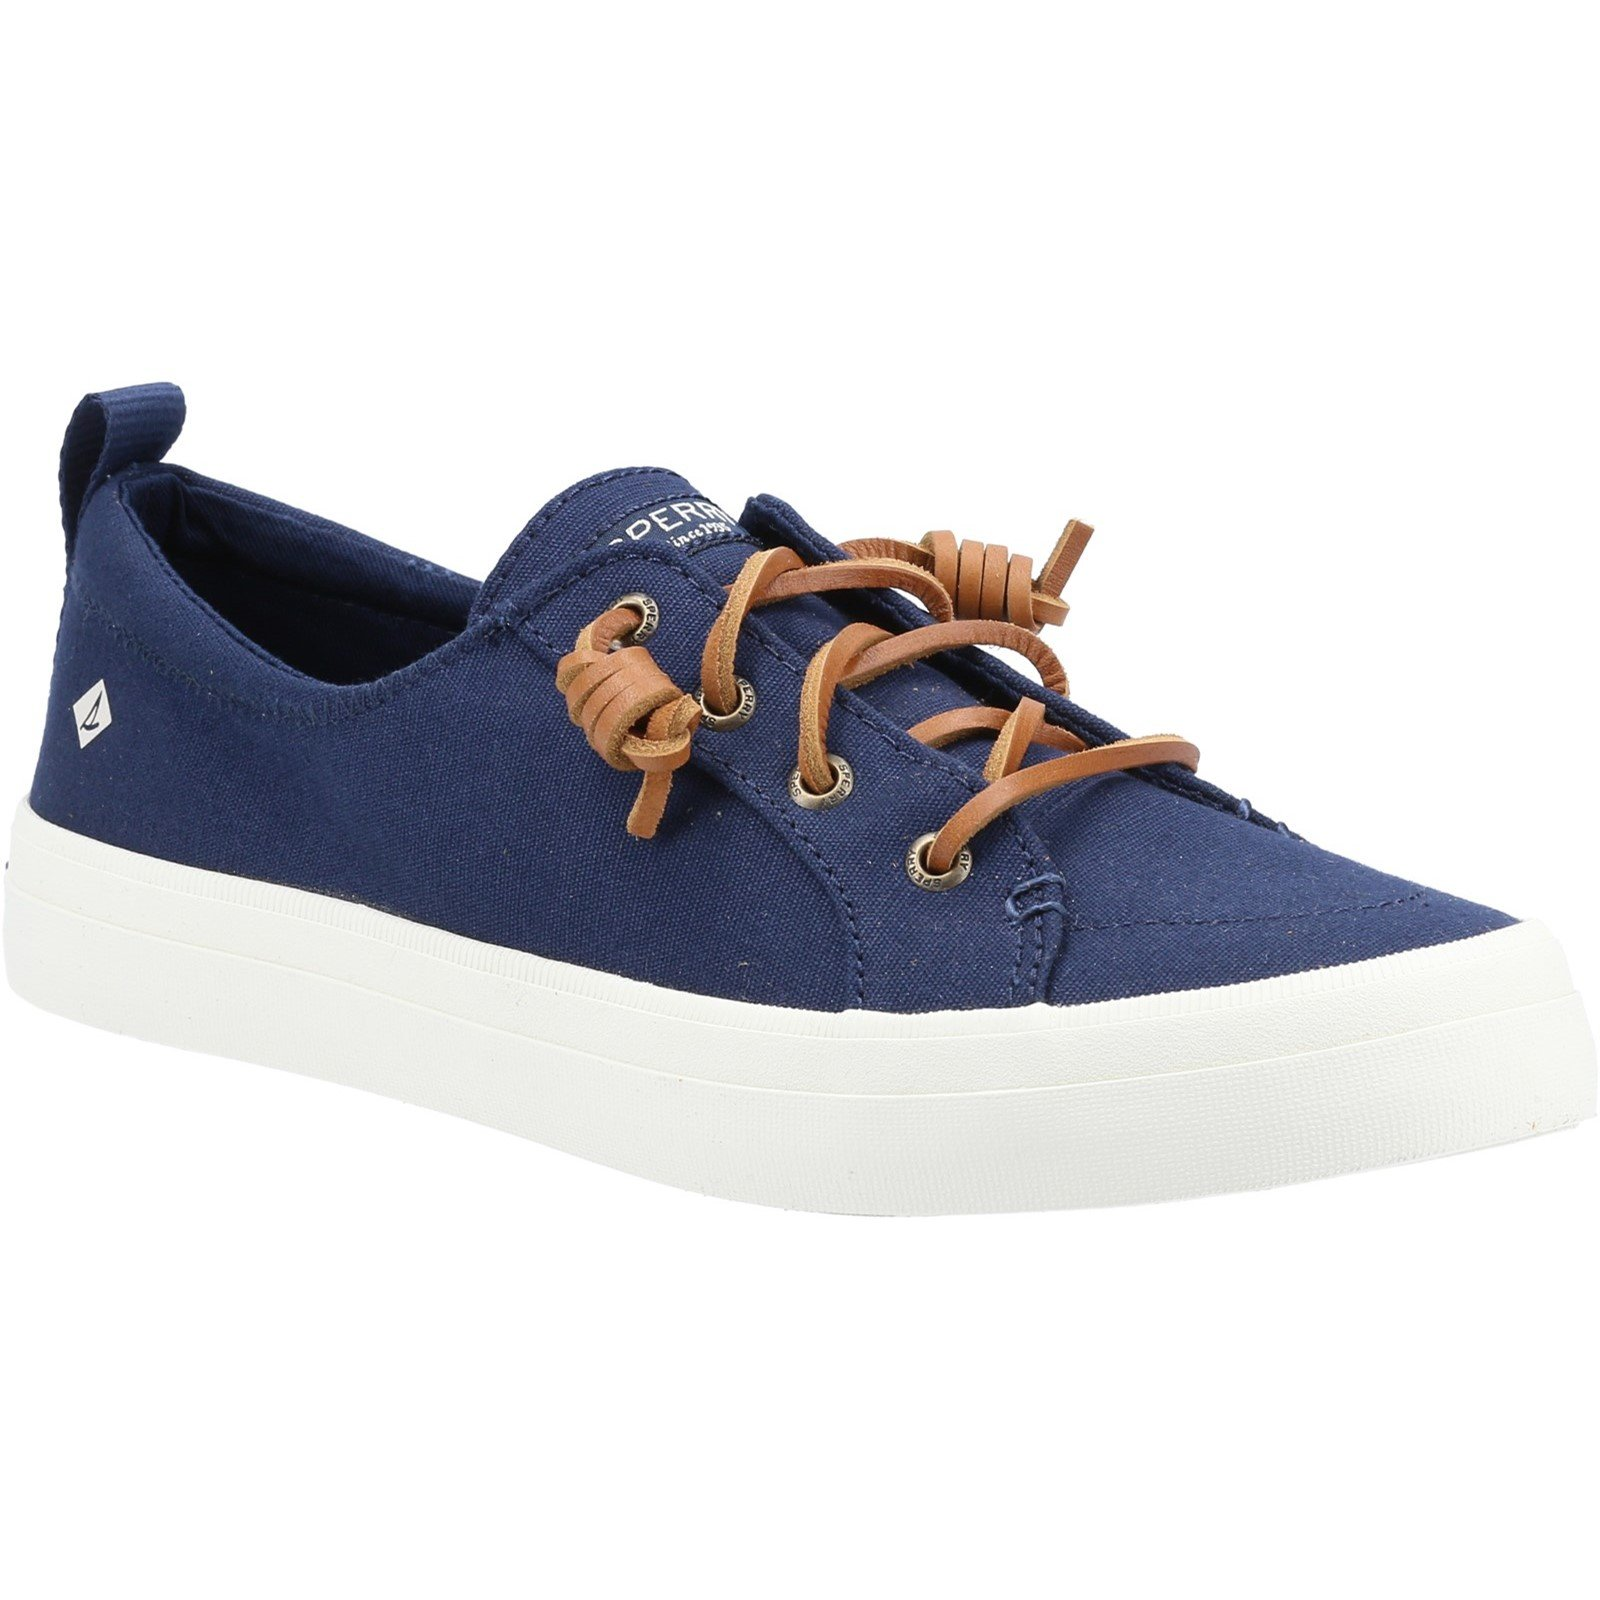 Sperry Women's Crest Vibe Canvas Lace Trainers Various Colours 32937 - Navy 4